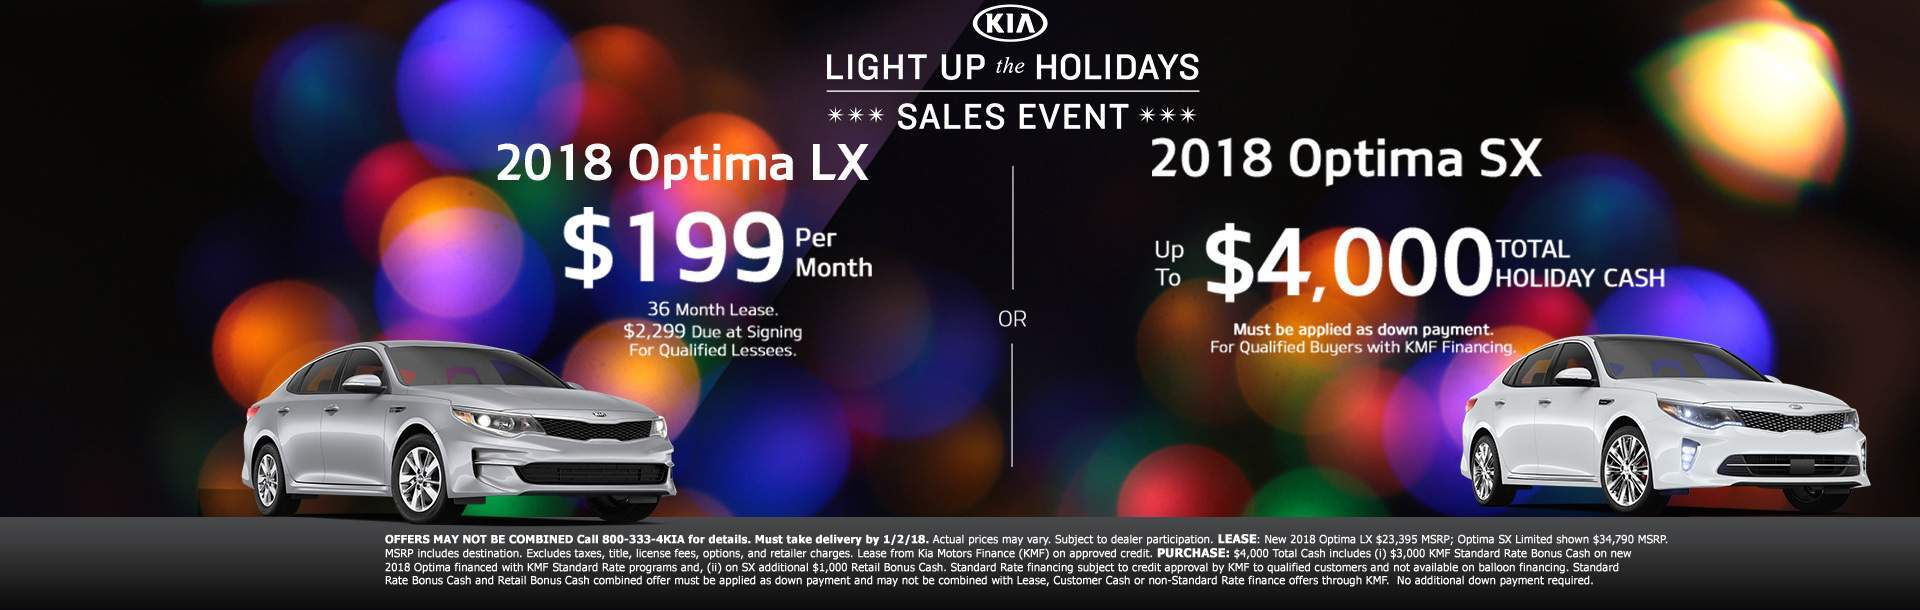 Light Up the Holidays 2